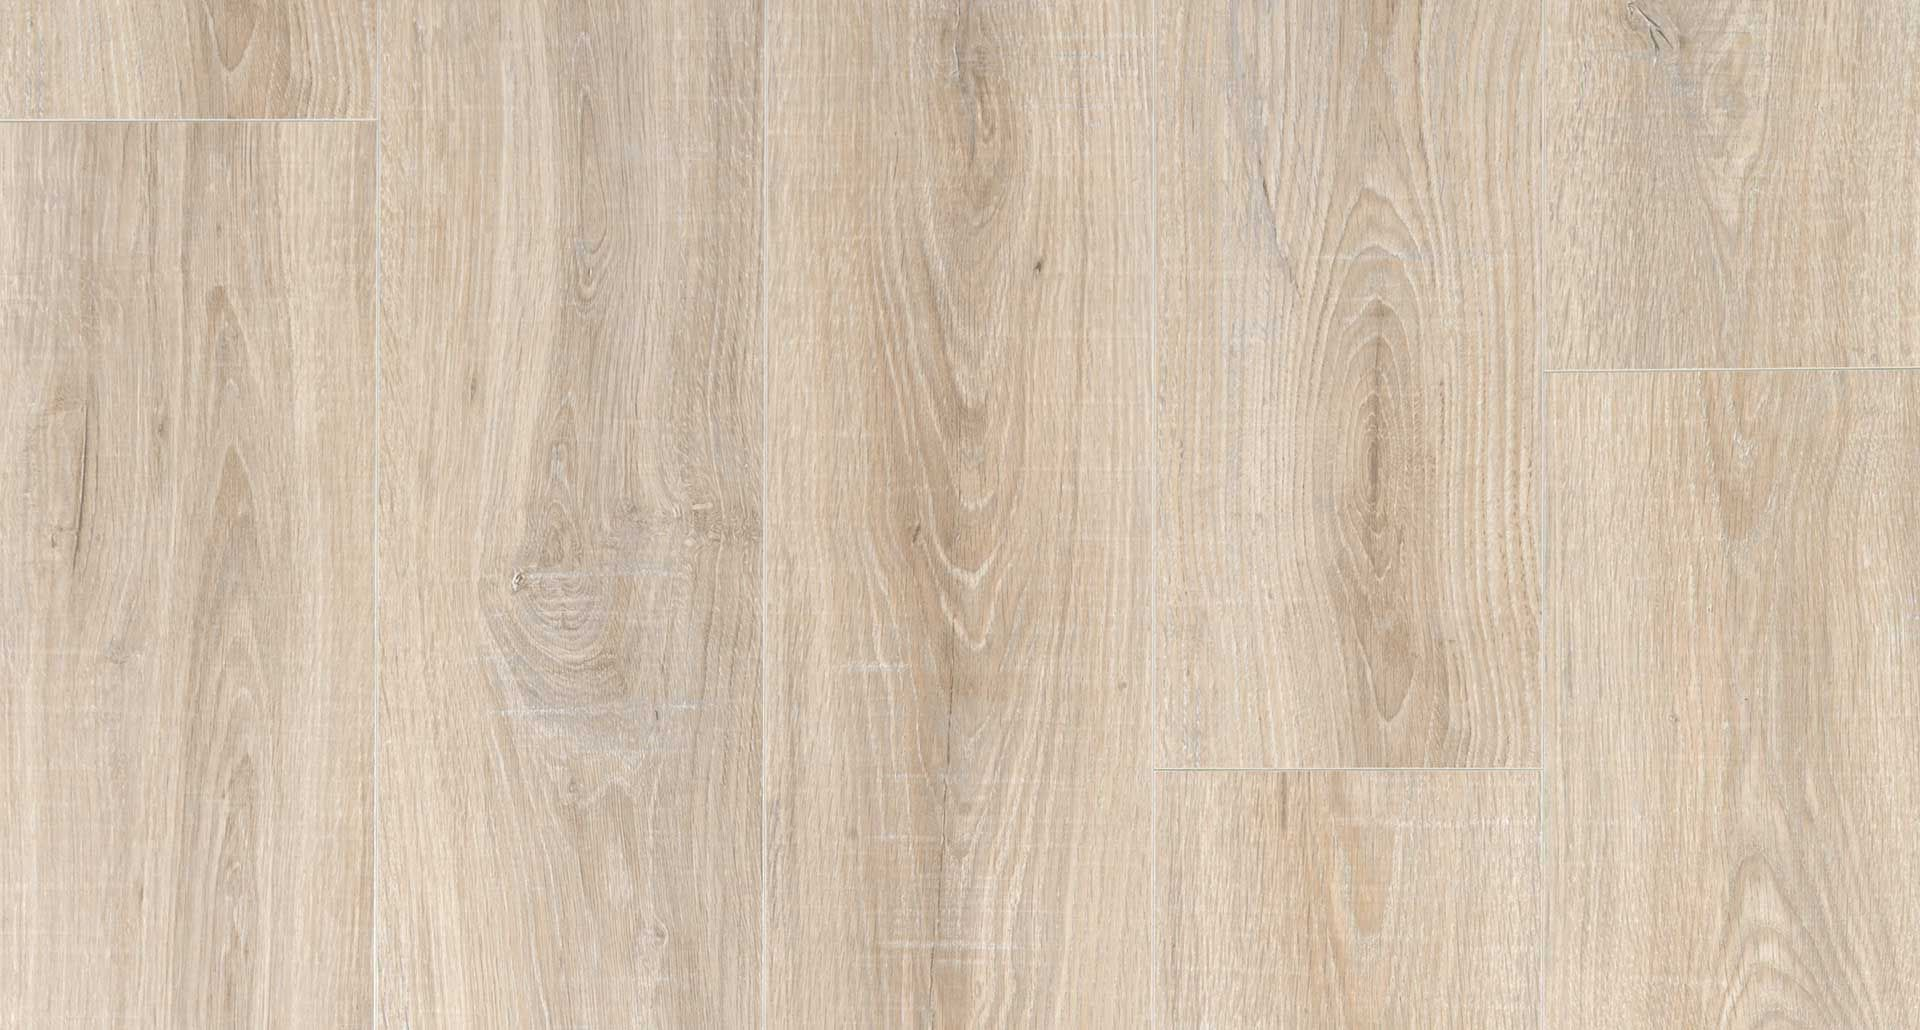 Light Hardwood Floor Texture: San Marco Oak Textured Laminate Floor. Light Oak Wood